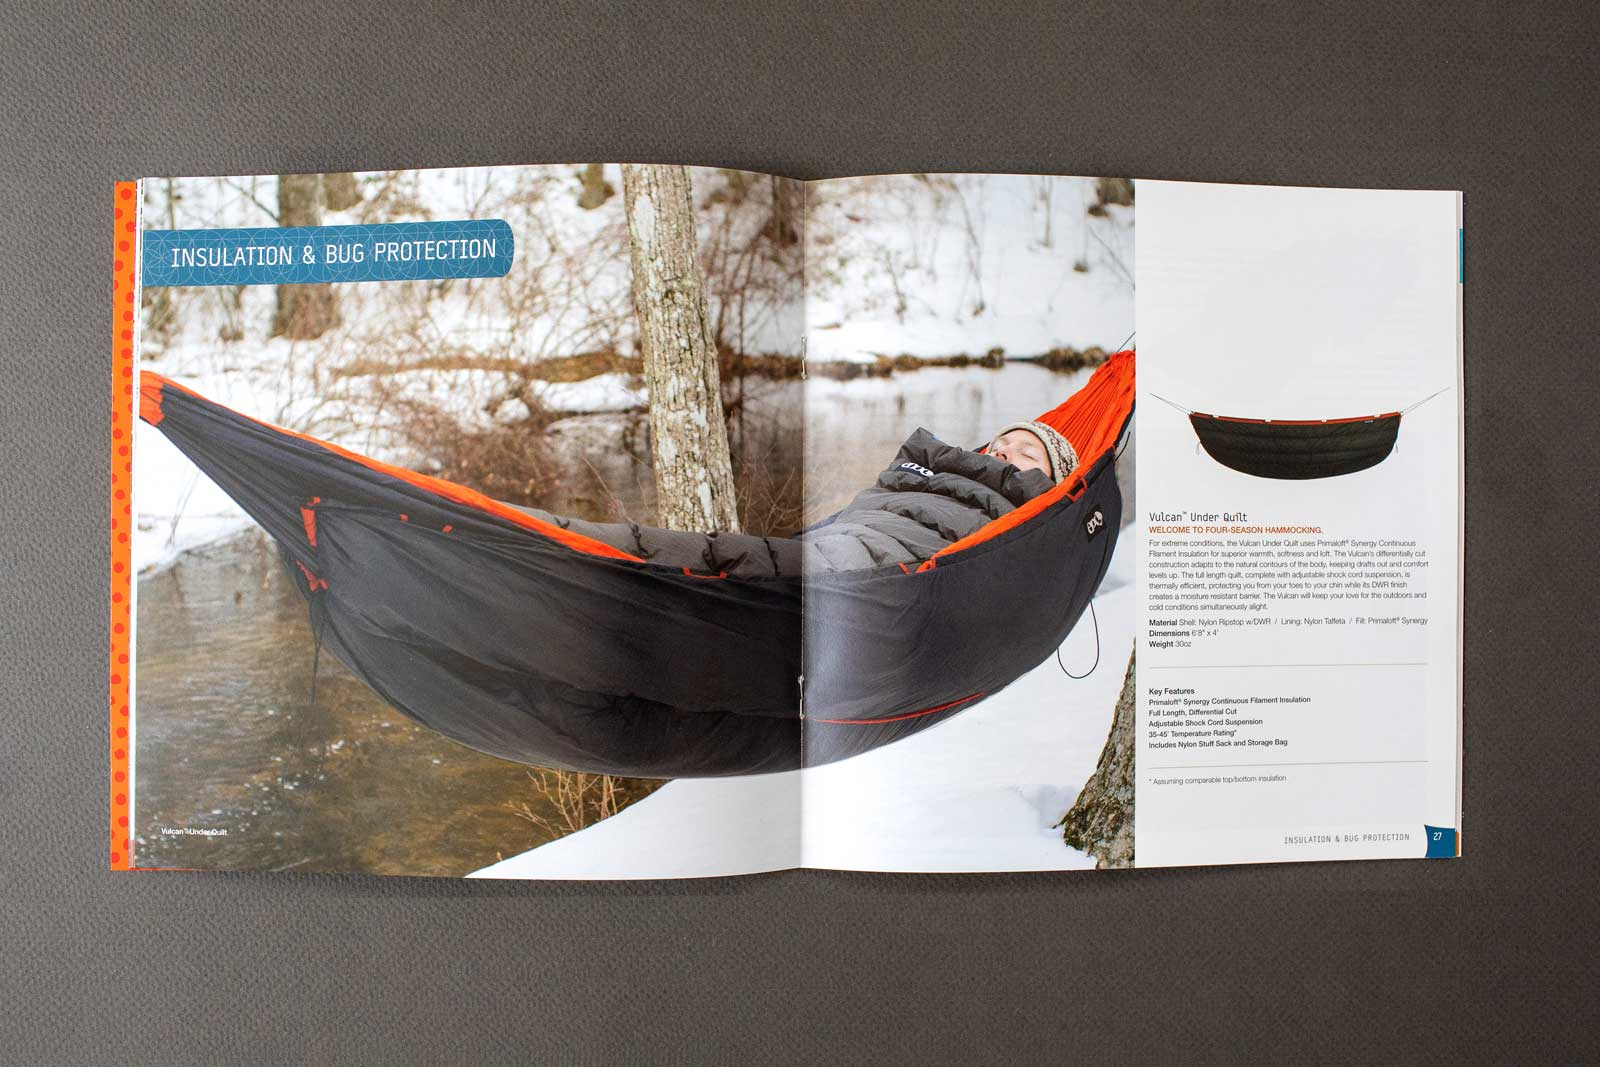 Eagle Nest Outfitters Hammocks catalog spread show products and hiker sleeping in insulated hammock handing over a snow-covered ground.